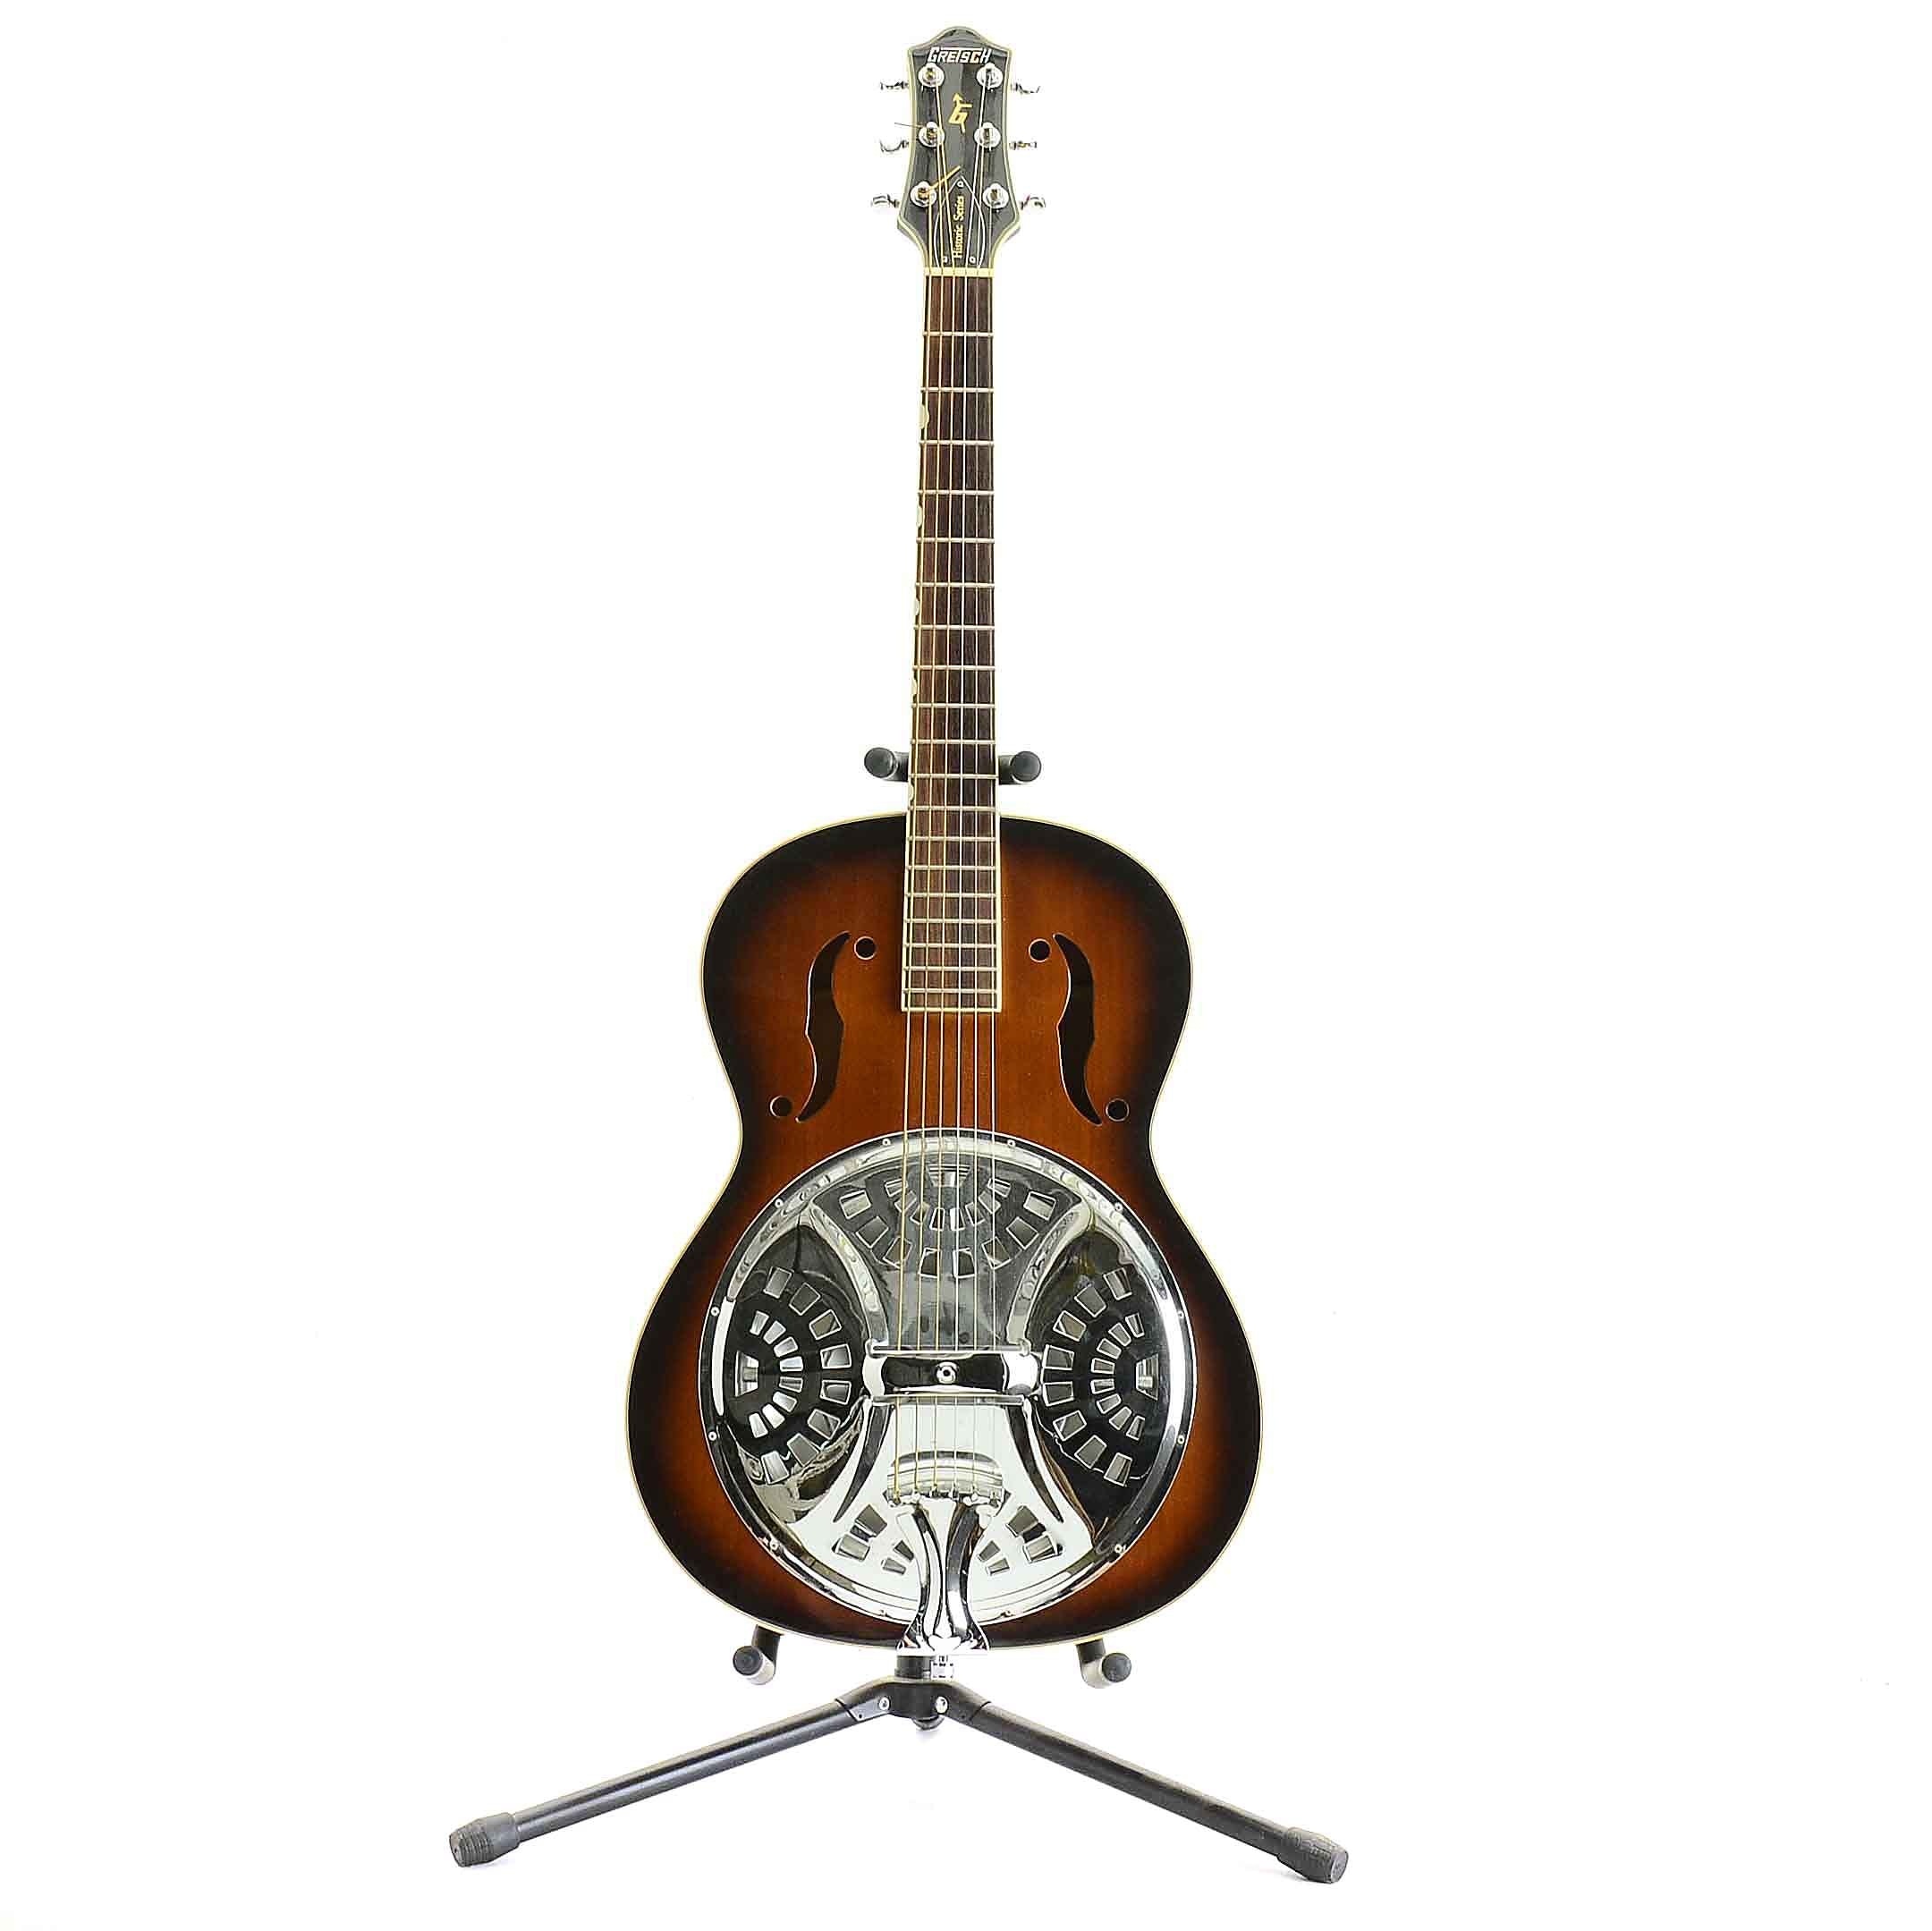 Gretsch G3170 Historic Series Resonator Guitar